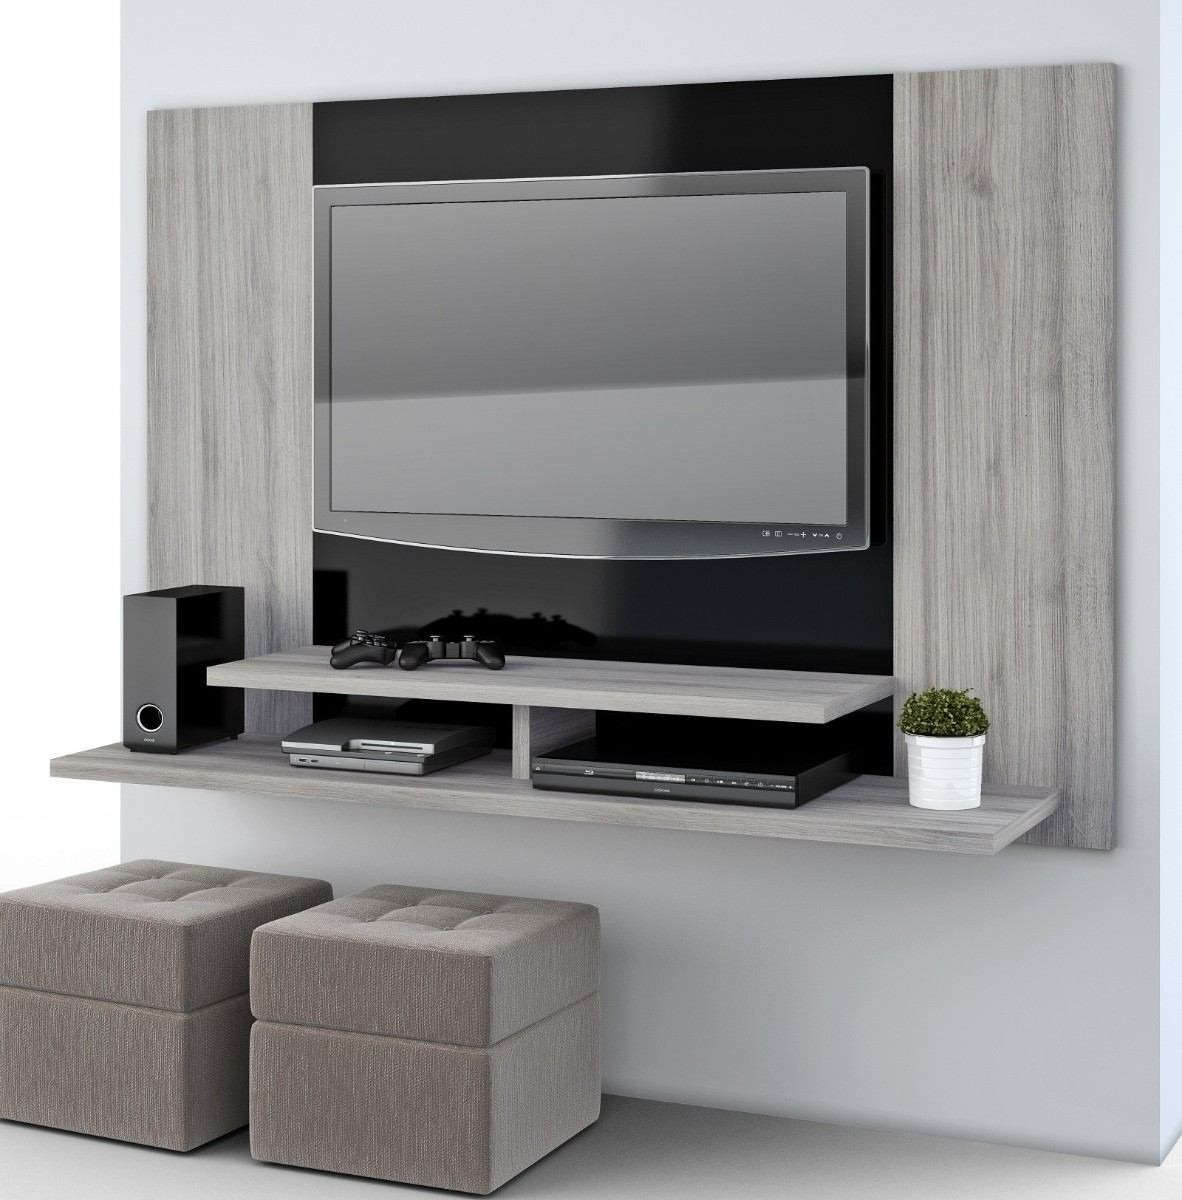 Mueble Flotante Para Tv Moderno Ref Manhatan